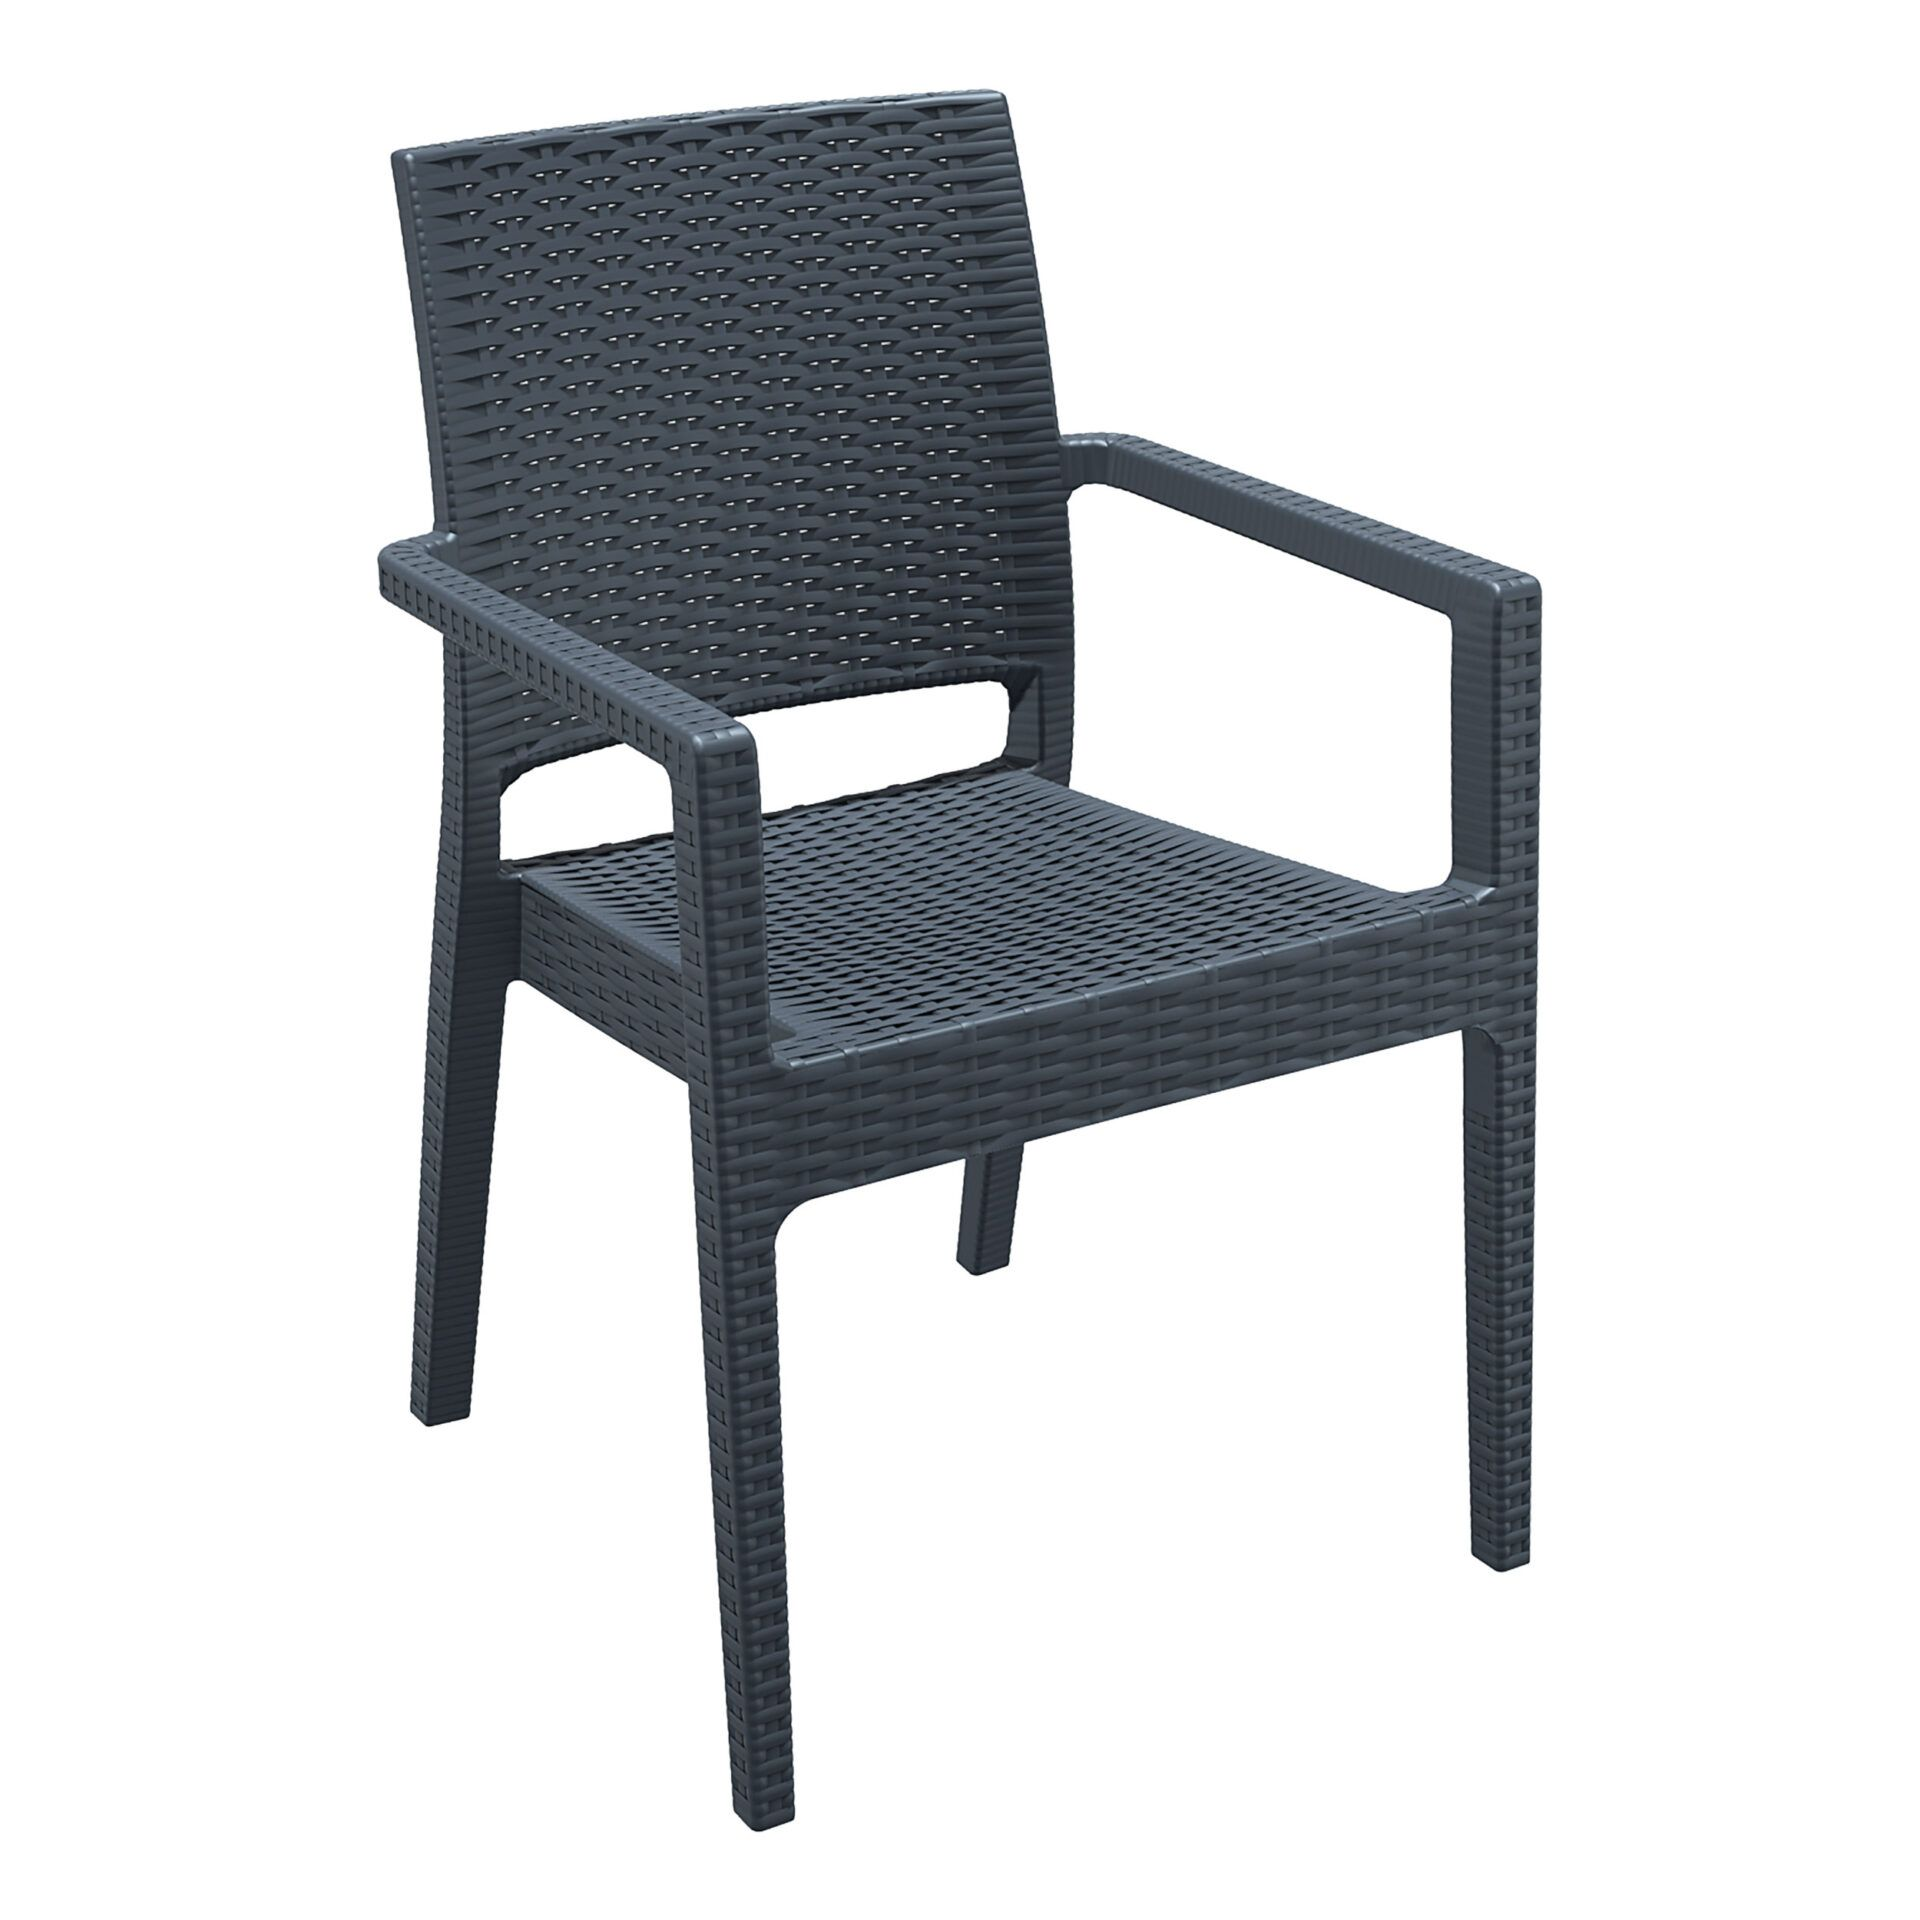 outdoor seating resin rattan ibiza armchair darkgrey front side